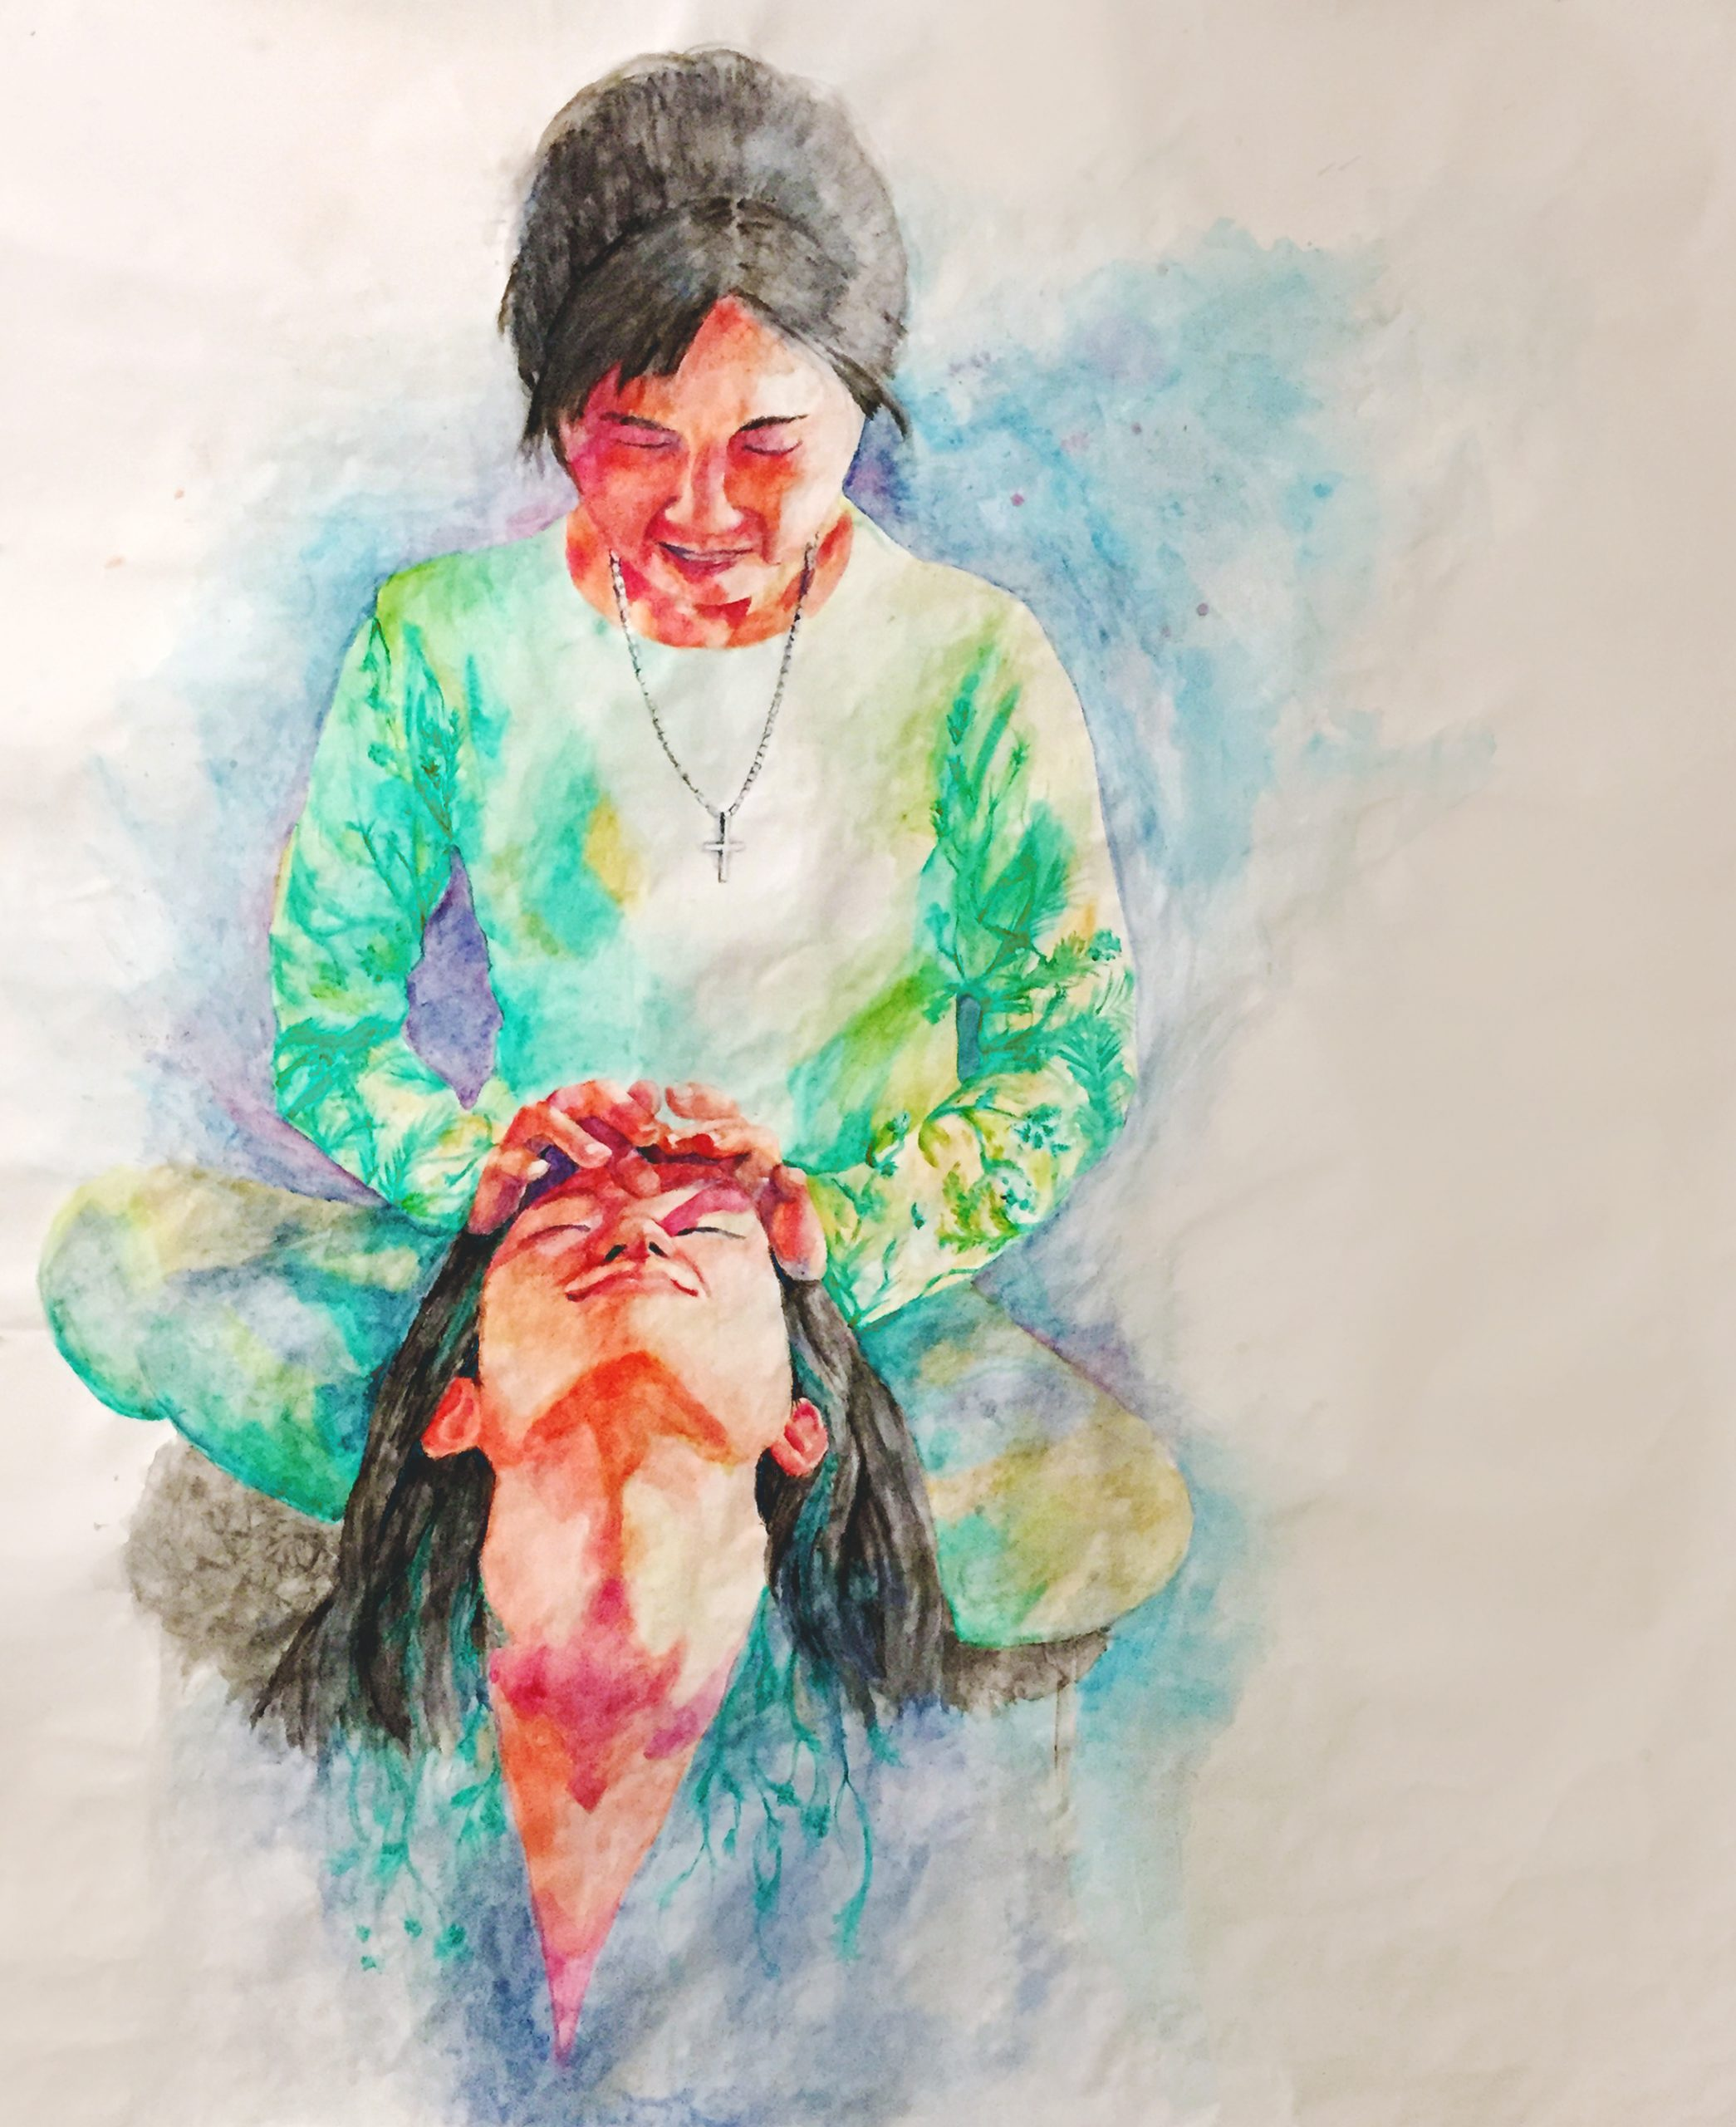 A person wearing blue with their head tilted back receives a massage from their mother, seated above them, wearing green and a cross necklace.